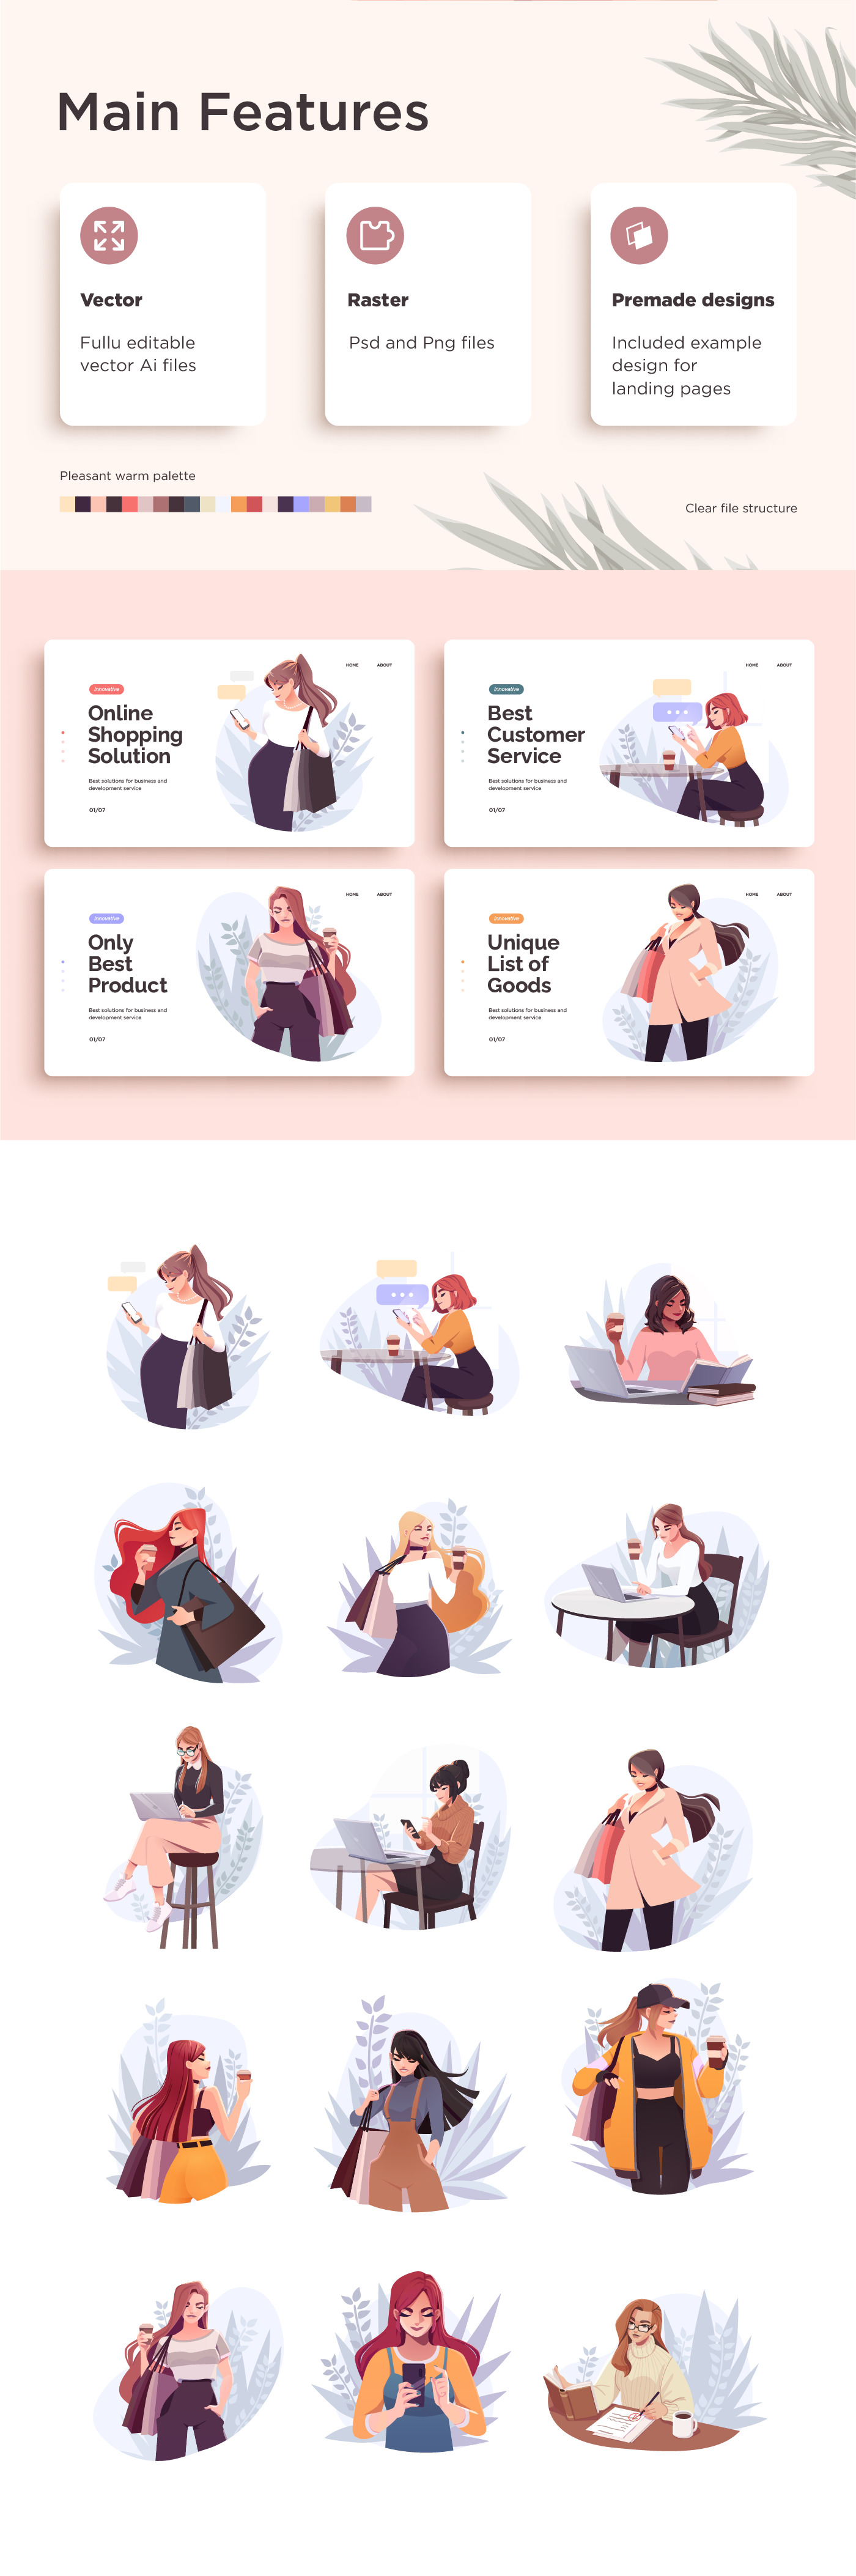 Yong modern women characters set. Working, education and shopping concept.